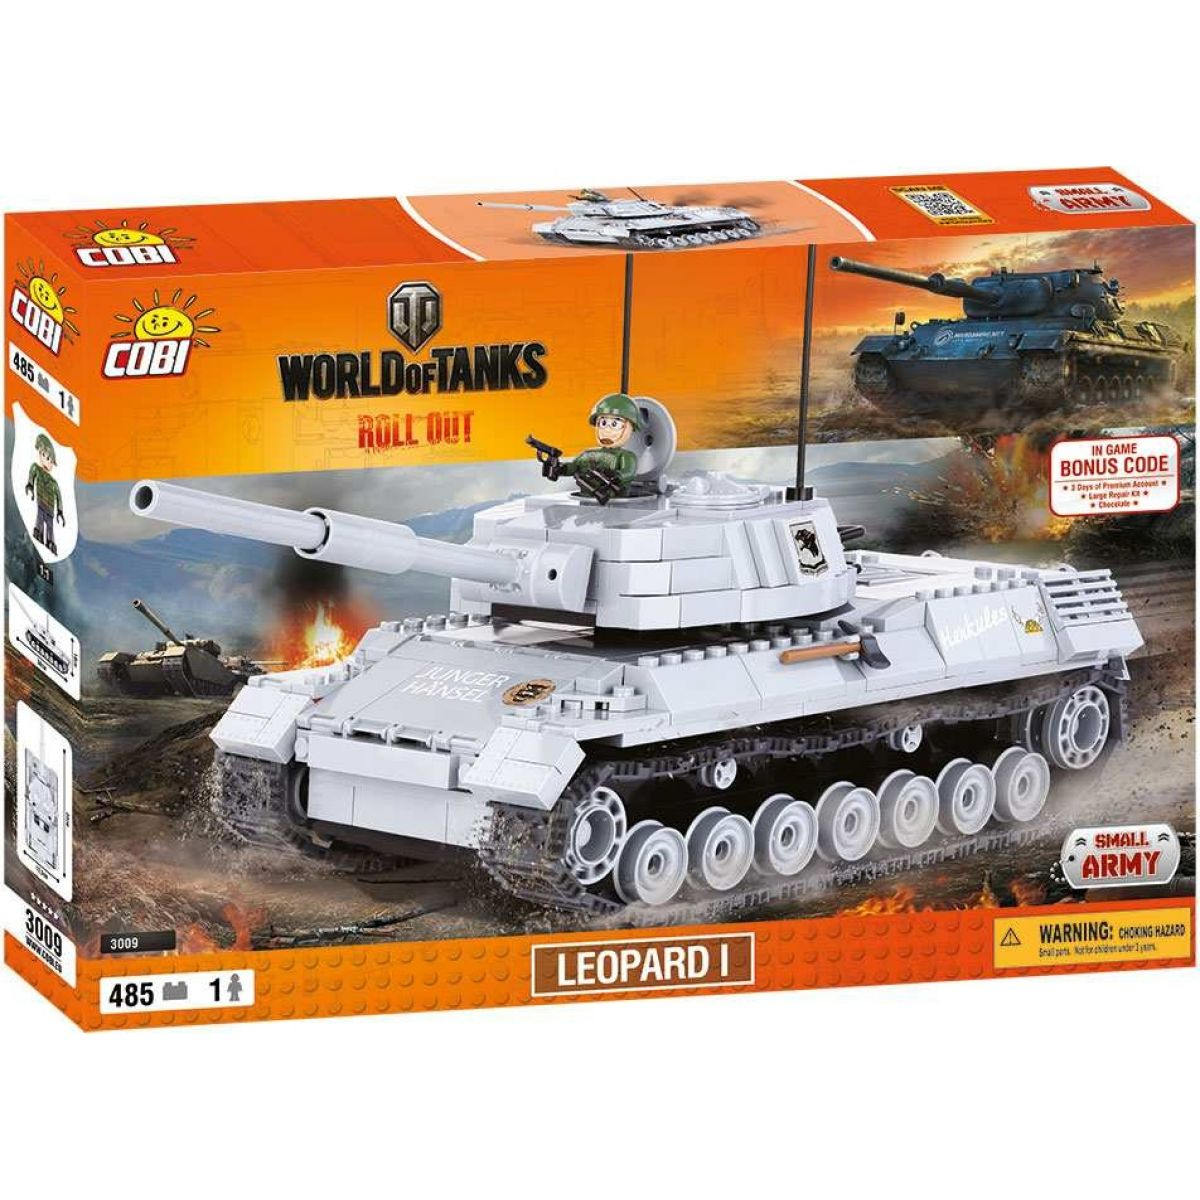 Cobi Malá armáda 3009 World of Tanks Leopard I